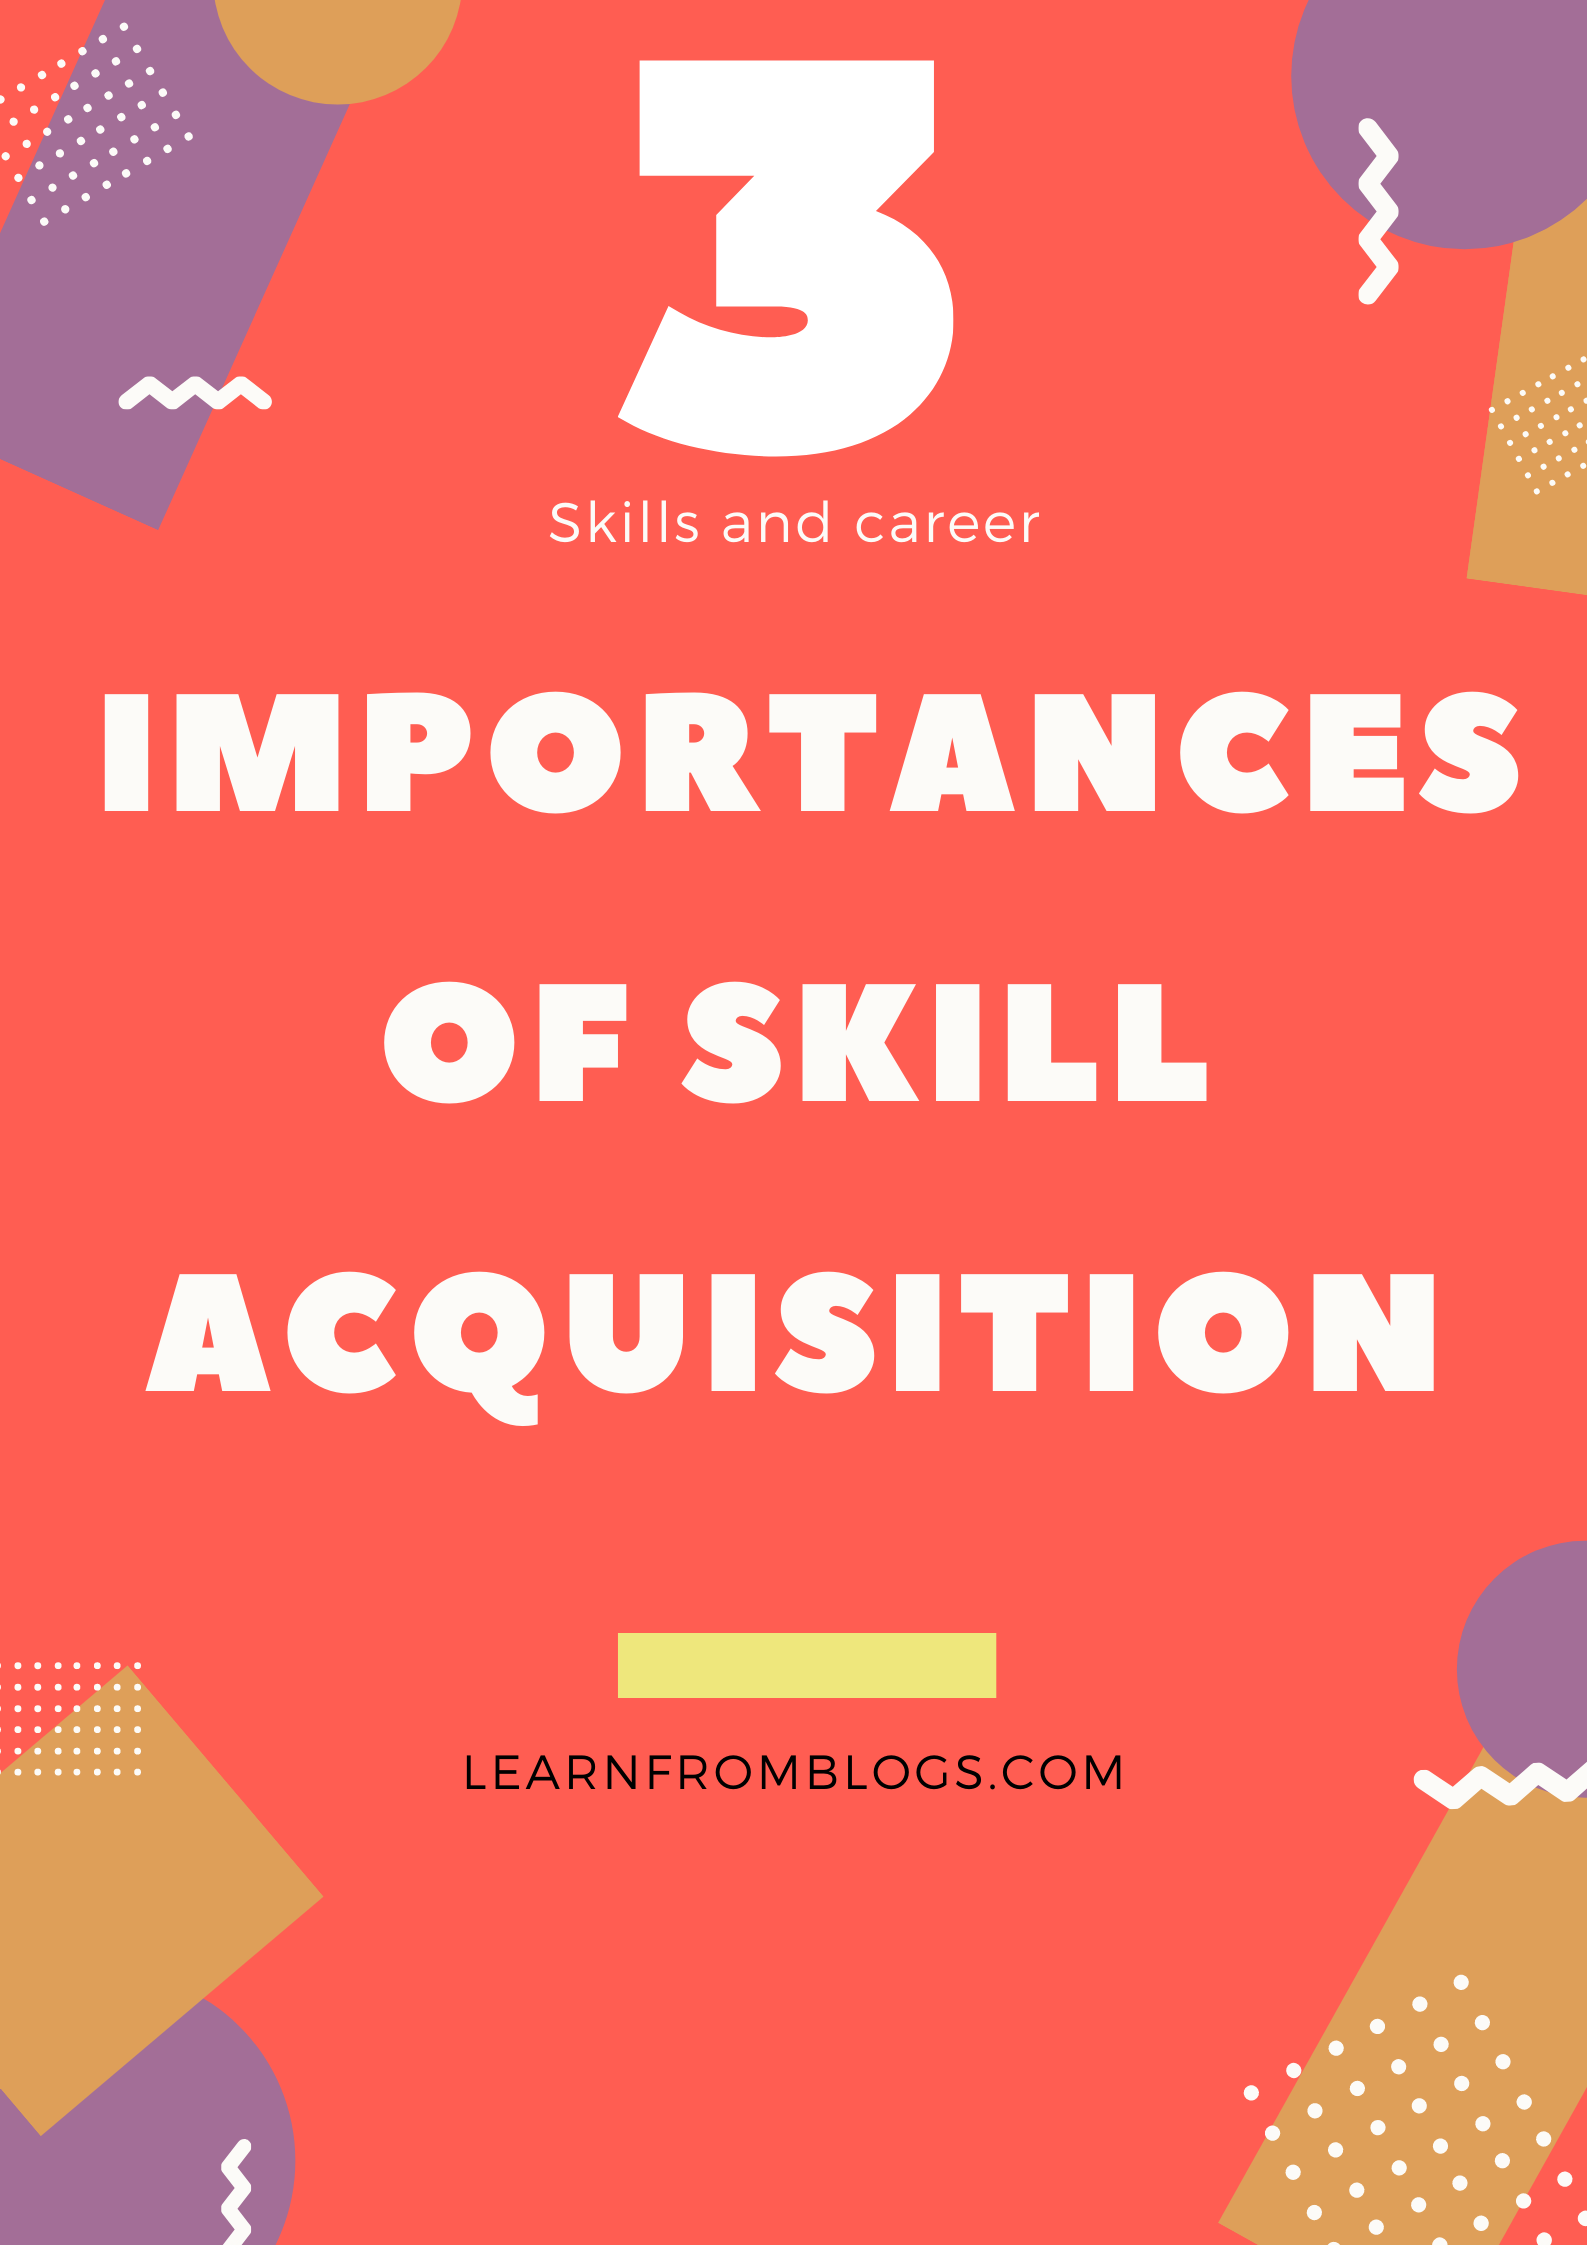 3 importances of skills acquisition.png